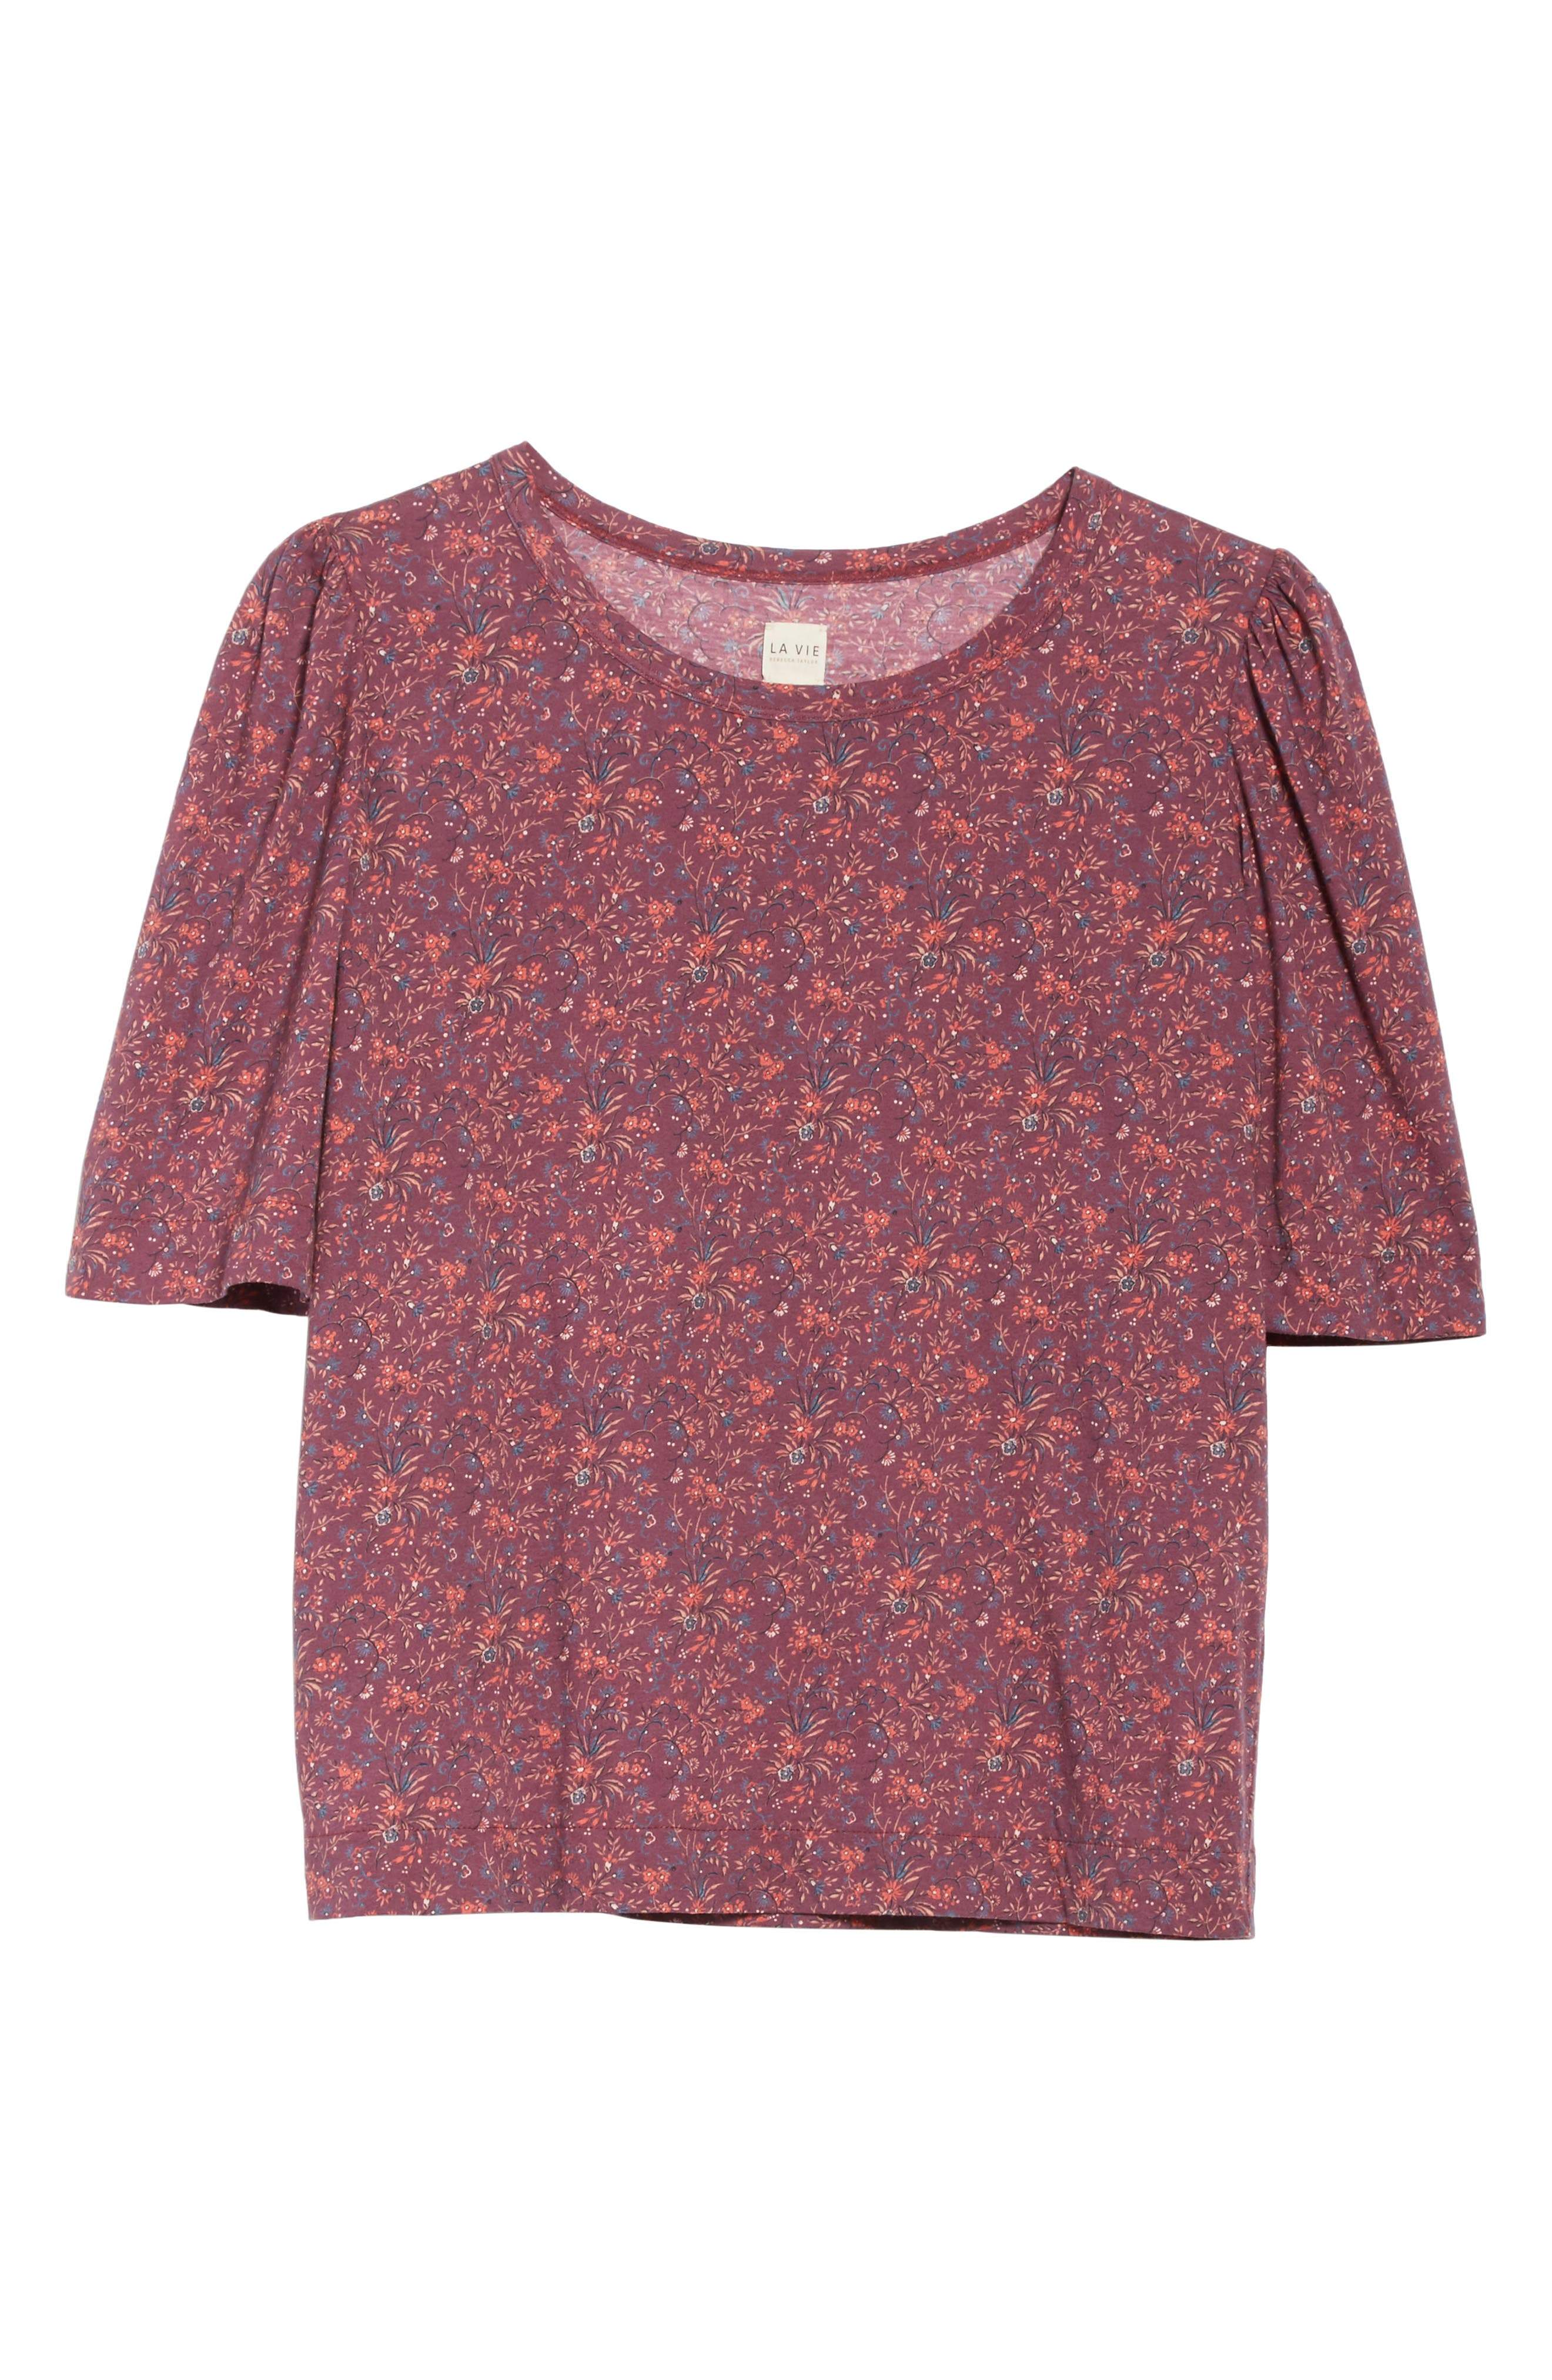 Rebecca Taylor Brittany Floral Jersey Top,                             Alternate thumbnail 6, color,                             Plum Combo